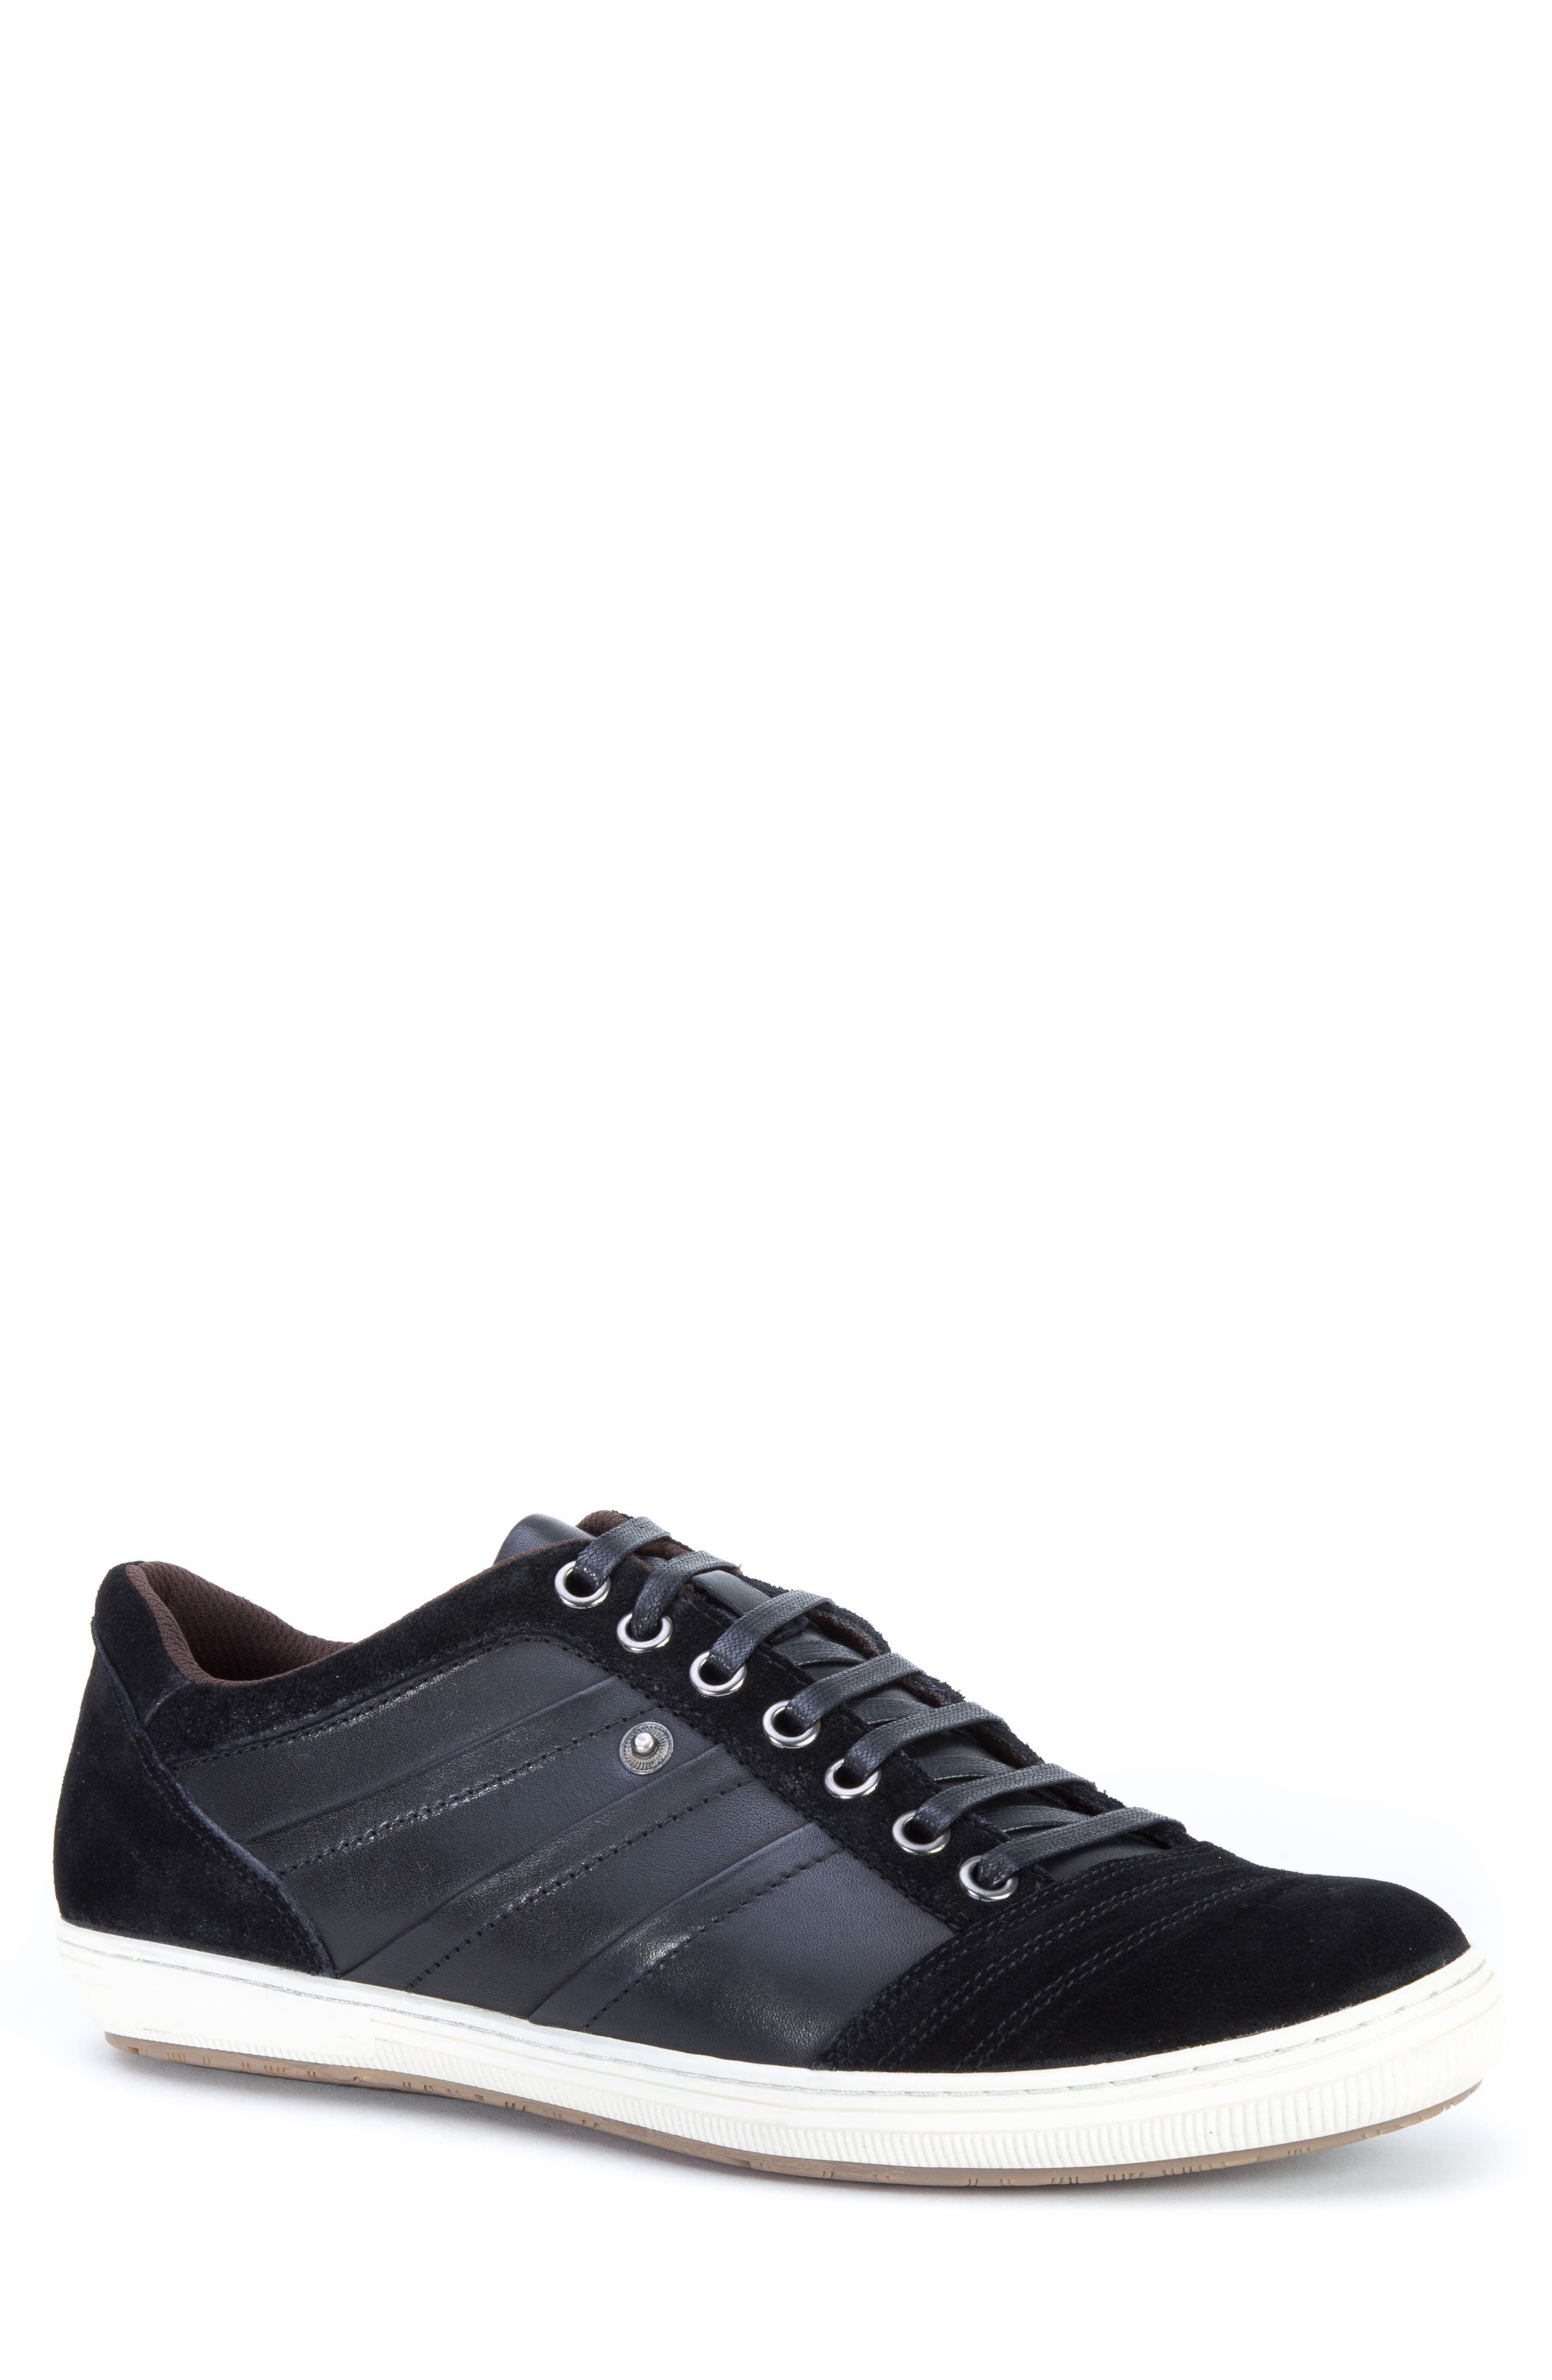 Jive Sneaker,                         Main,                         color, Black Leather/Suede